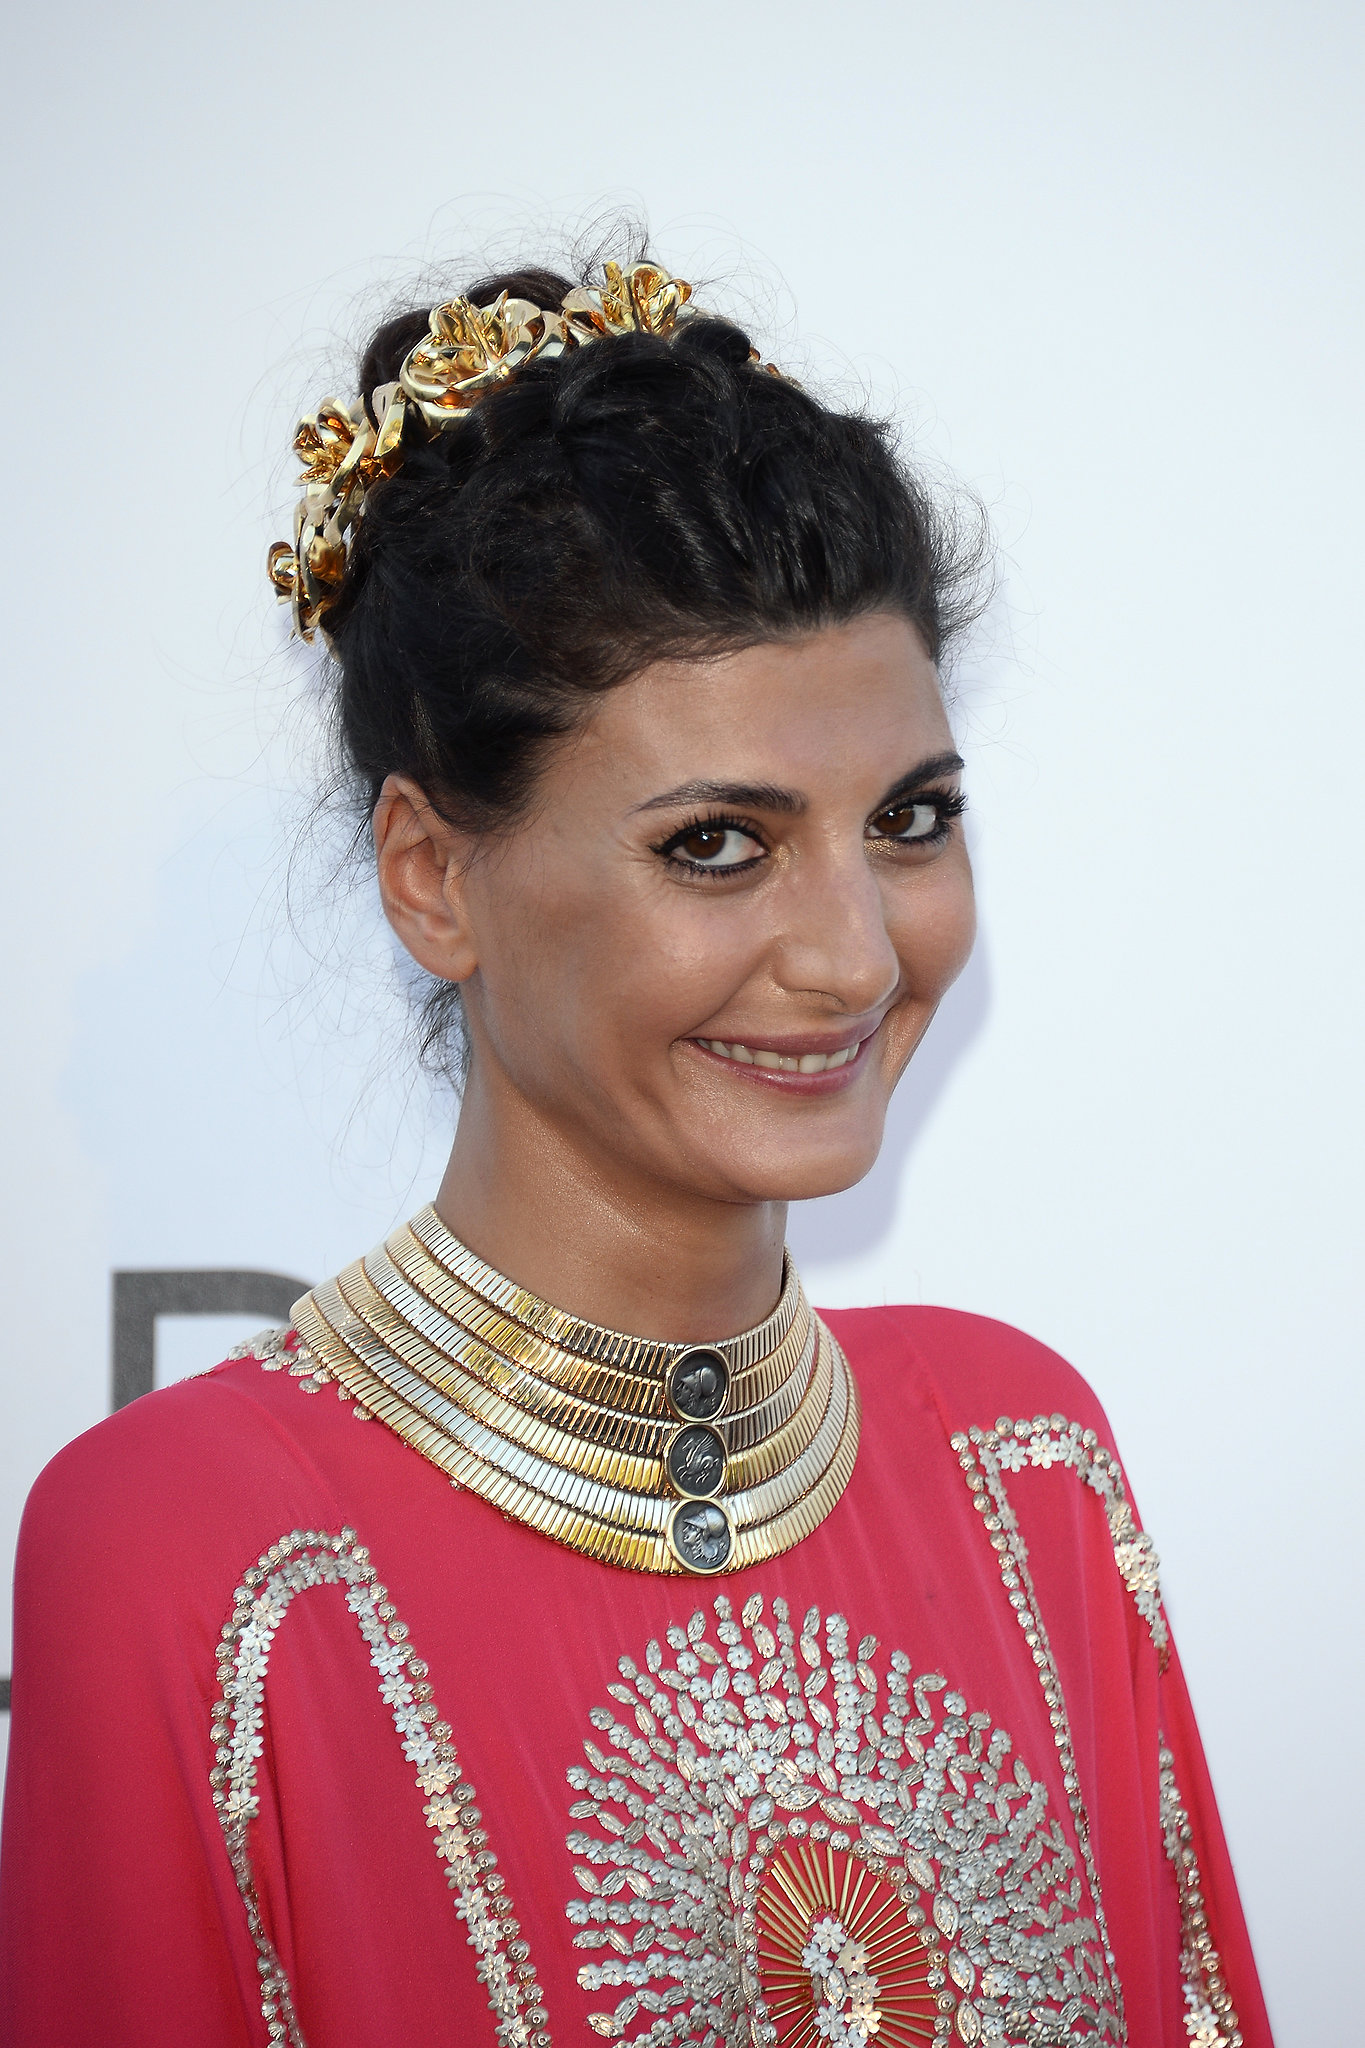 giovanna battaglia wore a stacked gold collar and an